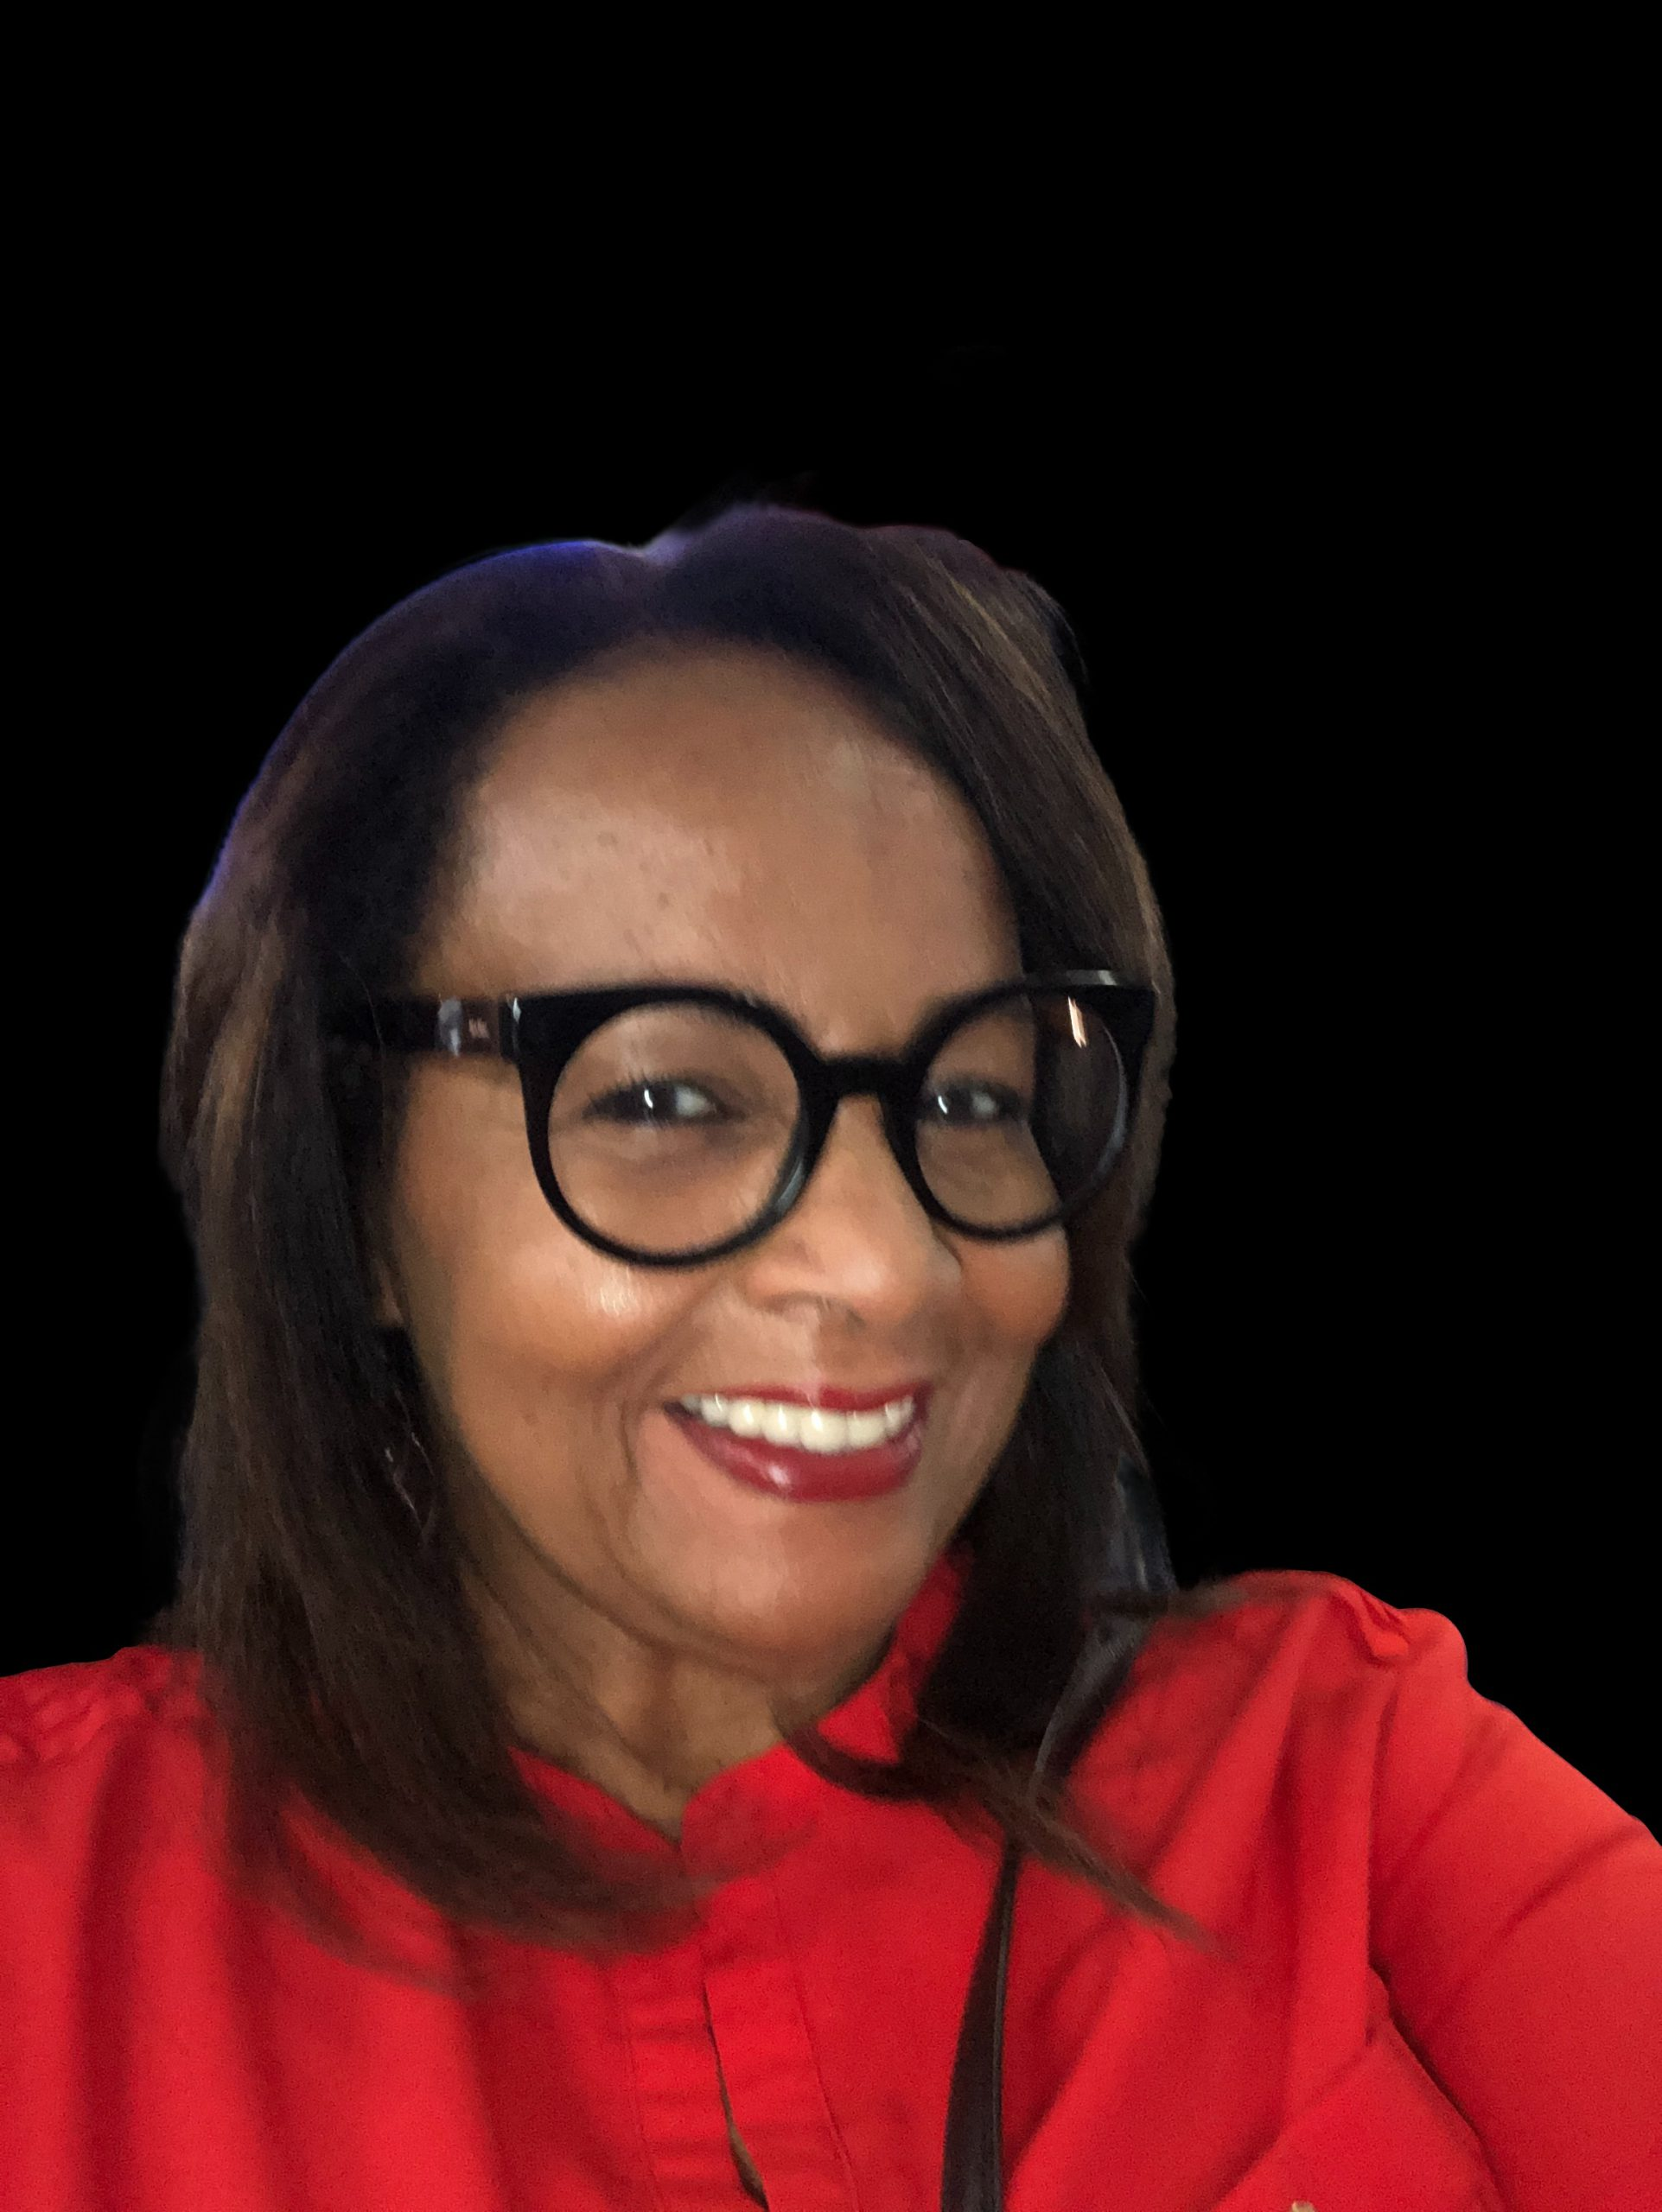 Shelia Dudley smiling with black round glasses and a red shirt